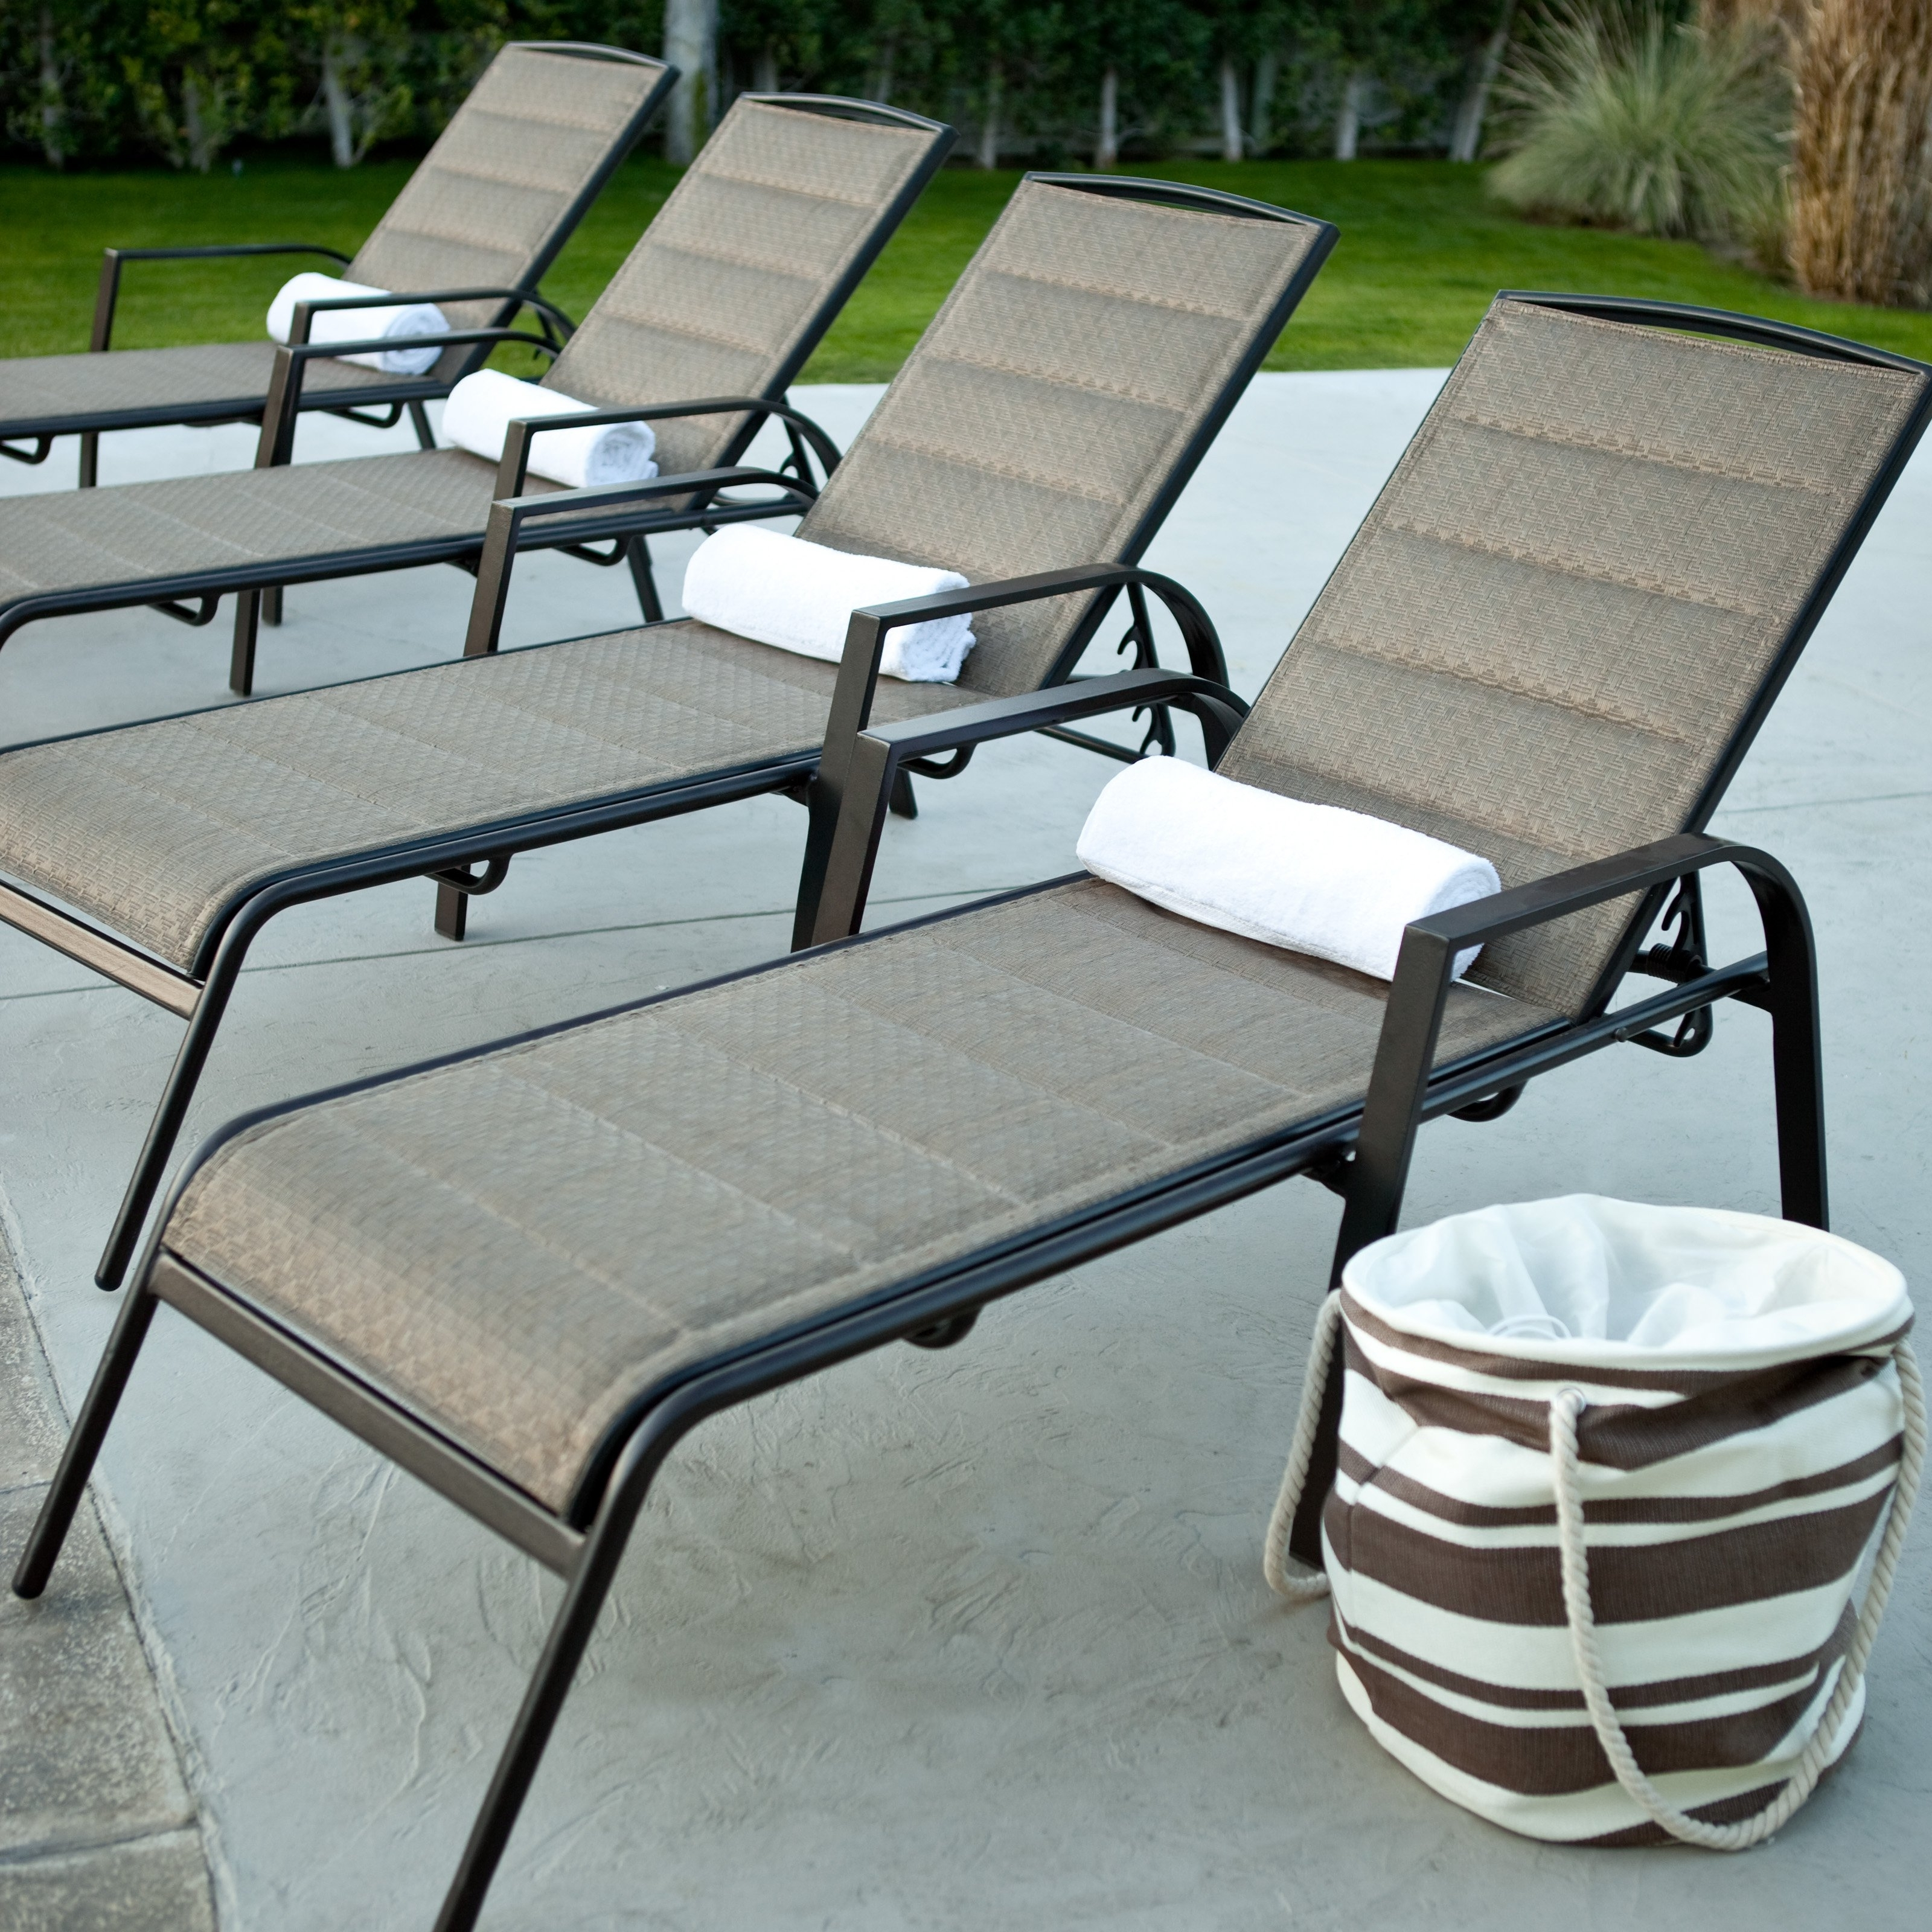 Chaise Lounge Chairs Pool Furniture • Lounge Chairs Ideas Inside Most Popular Chaise Lounge Lawn Chairs (View 12 of 15)